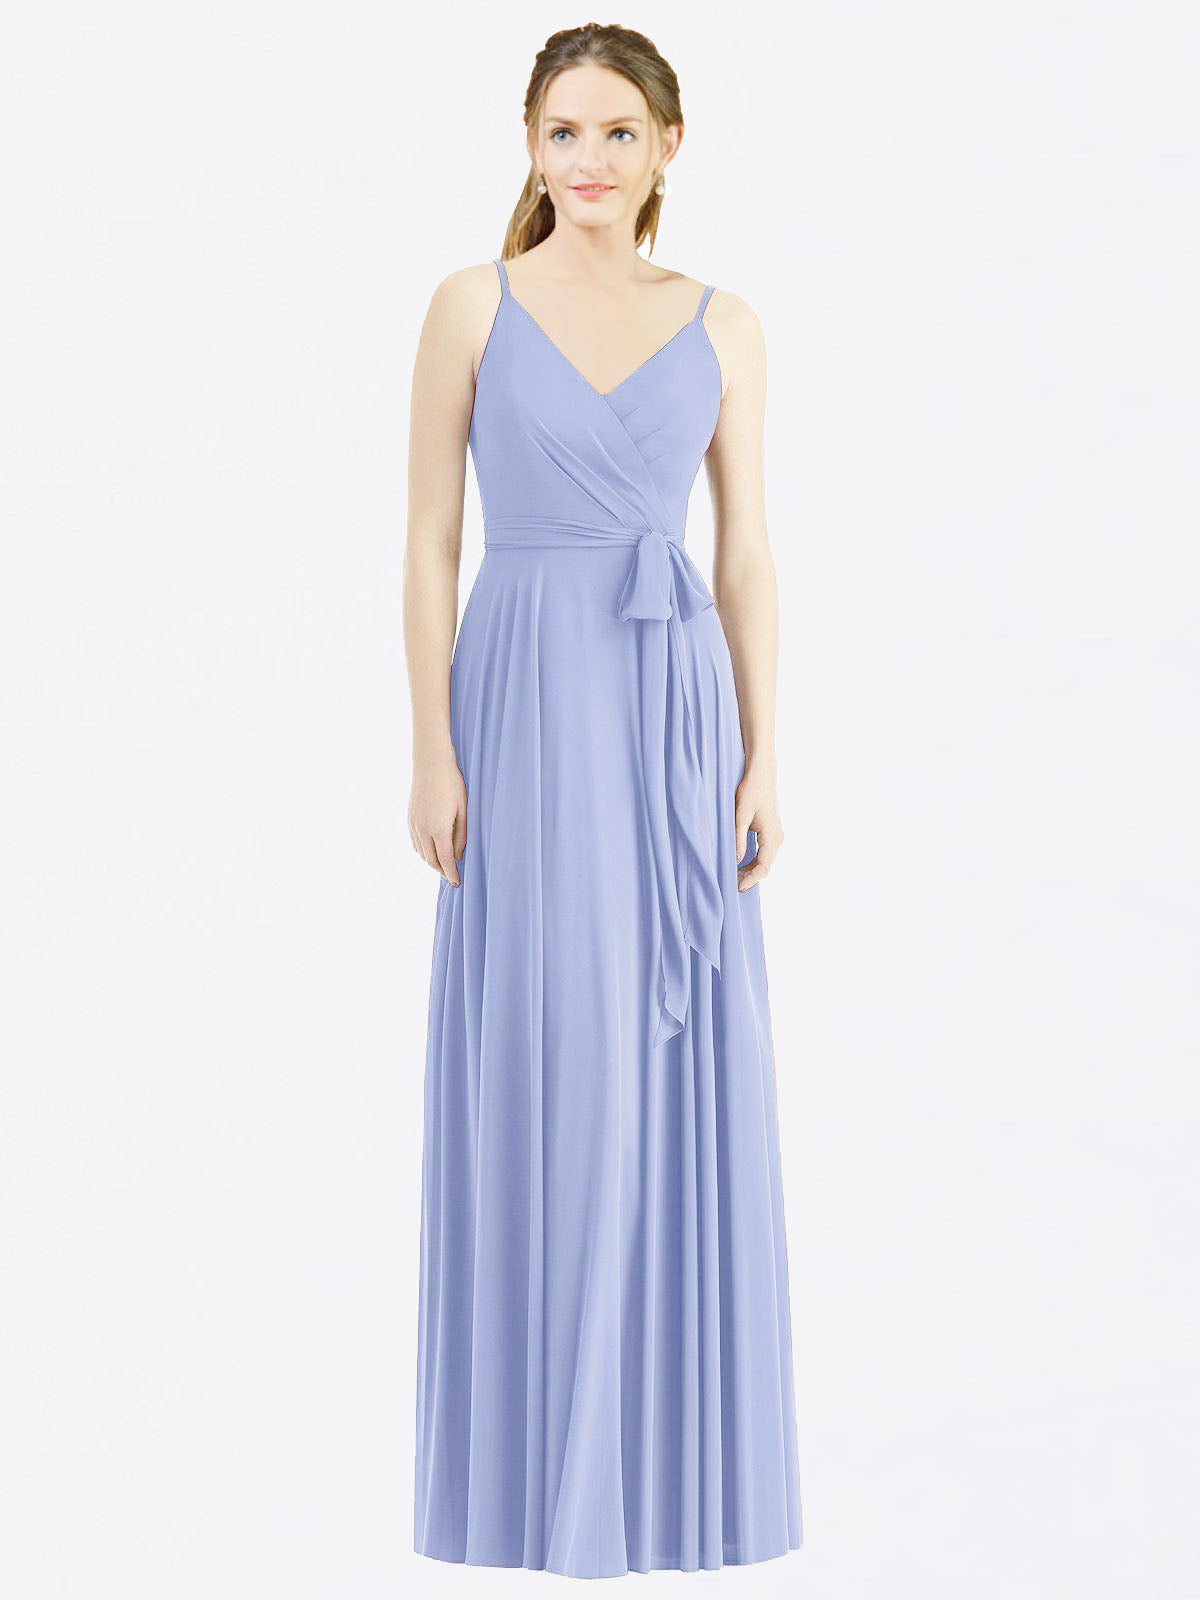 Long A-Line Spaghetti Straps, V-Neck Sleeveless Lavender Chiffon Bridesmaid Dress Madilyn